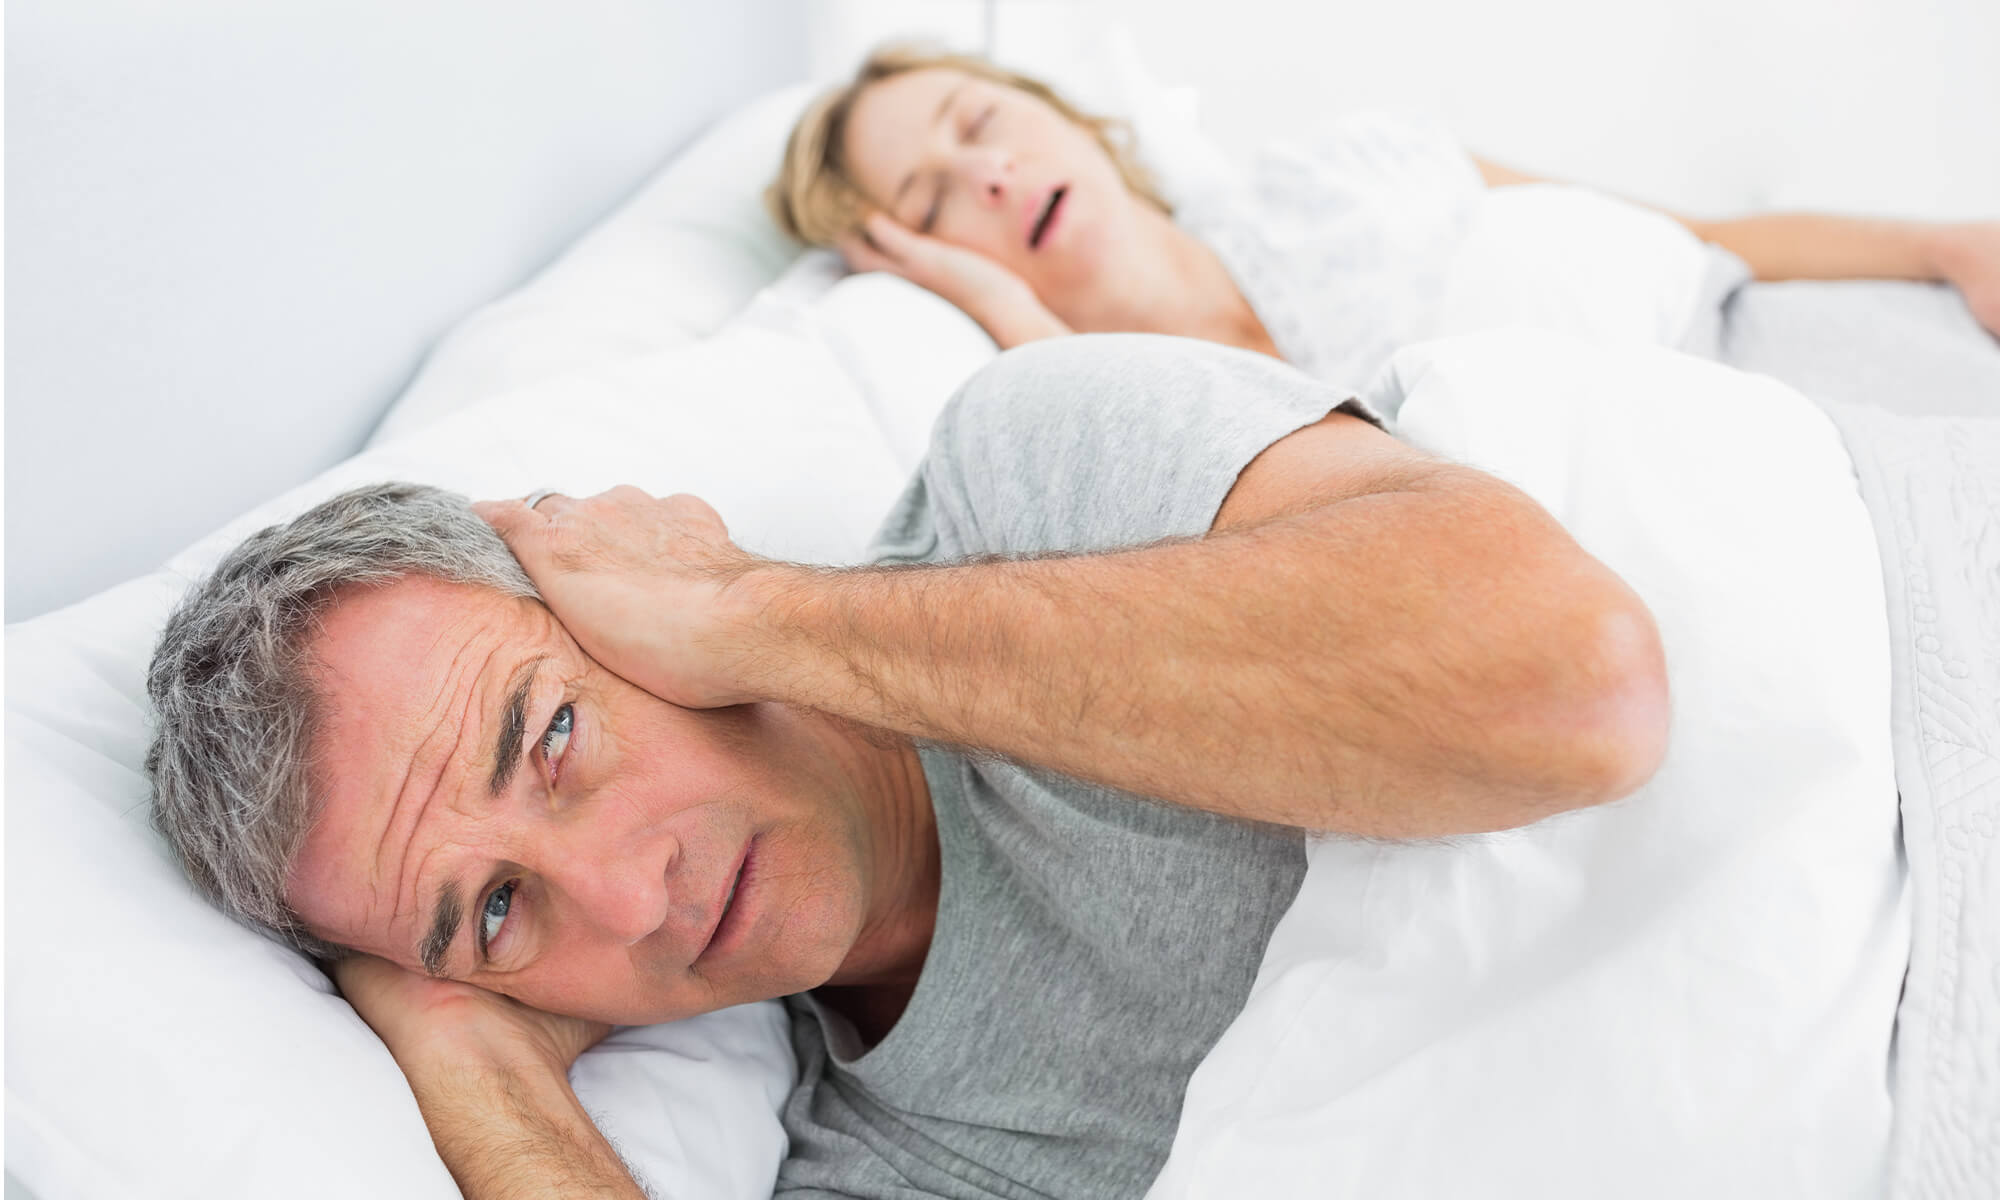 Woman with signs and symptoms of sleep apnea